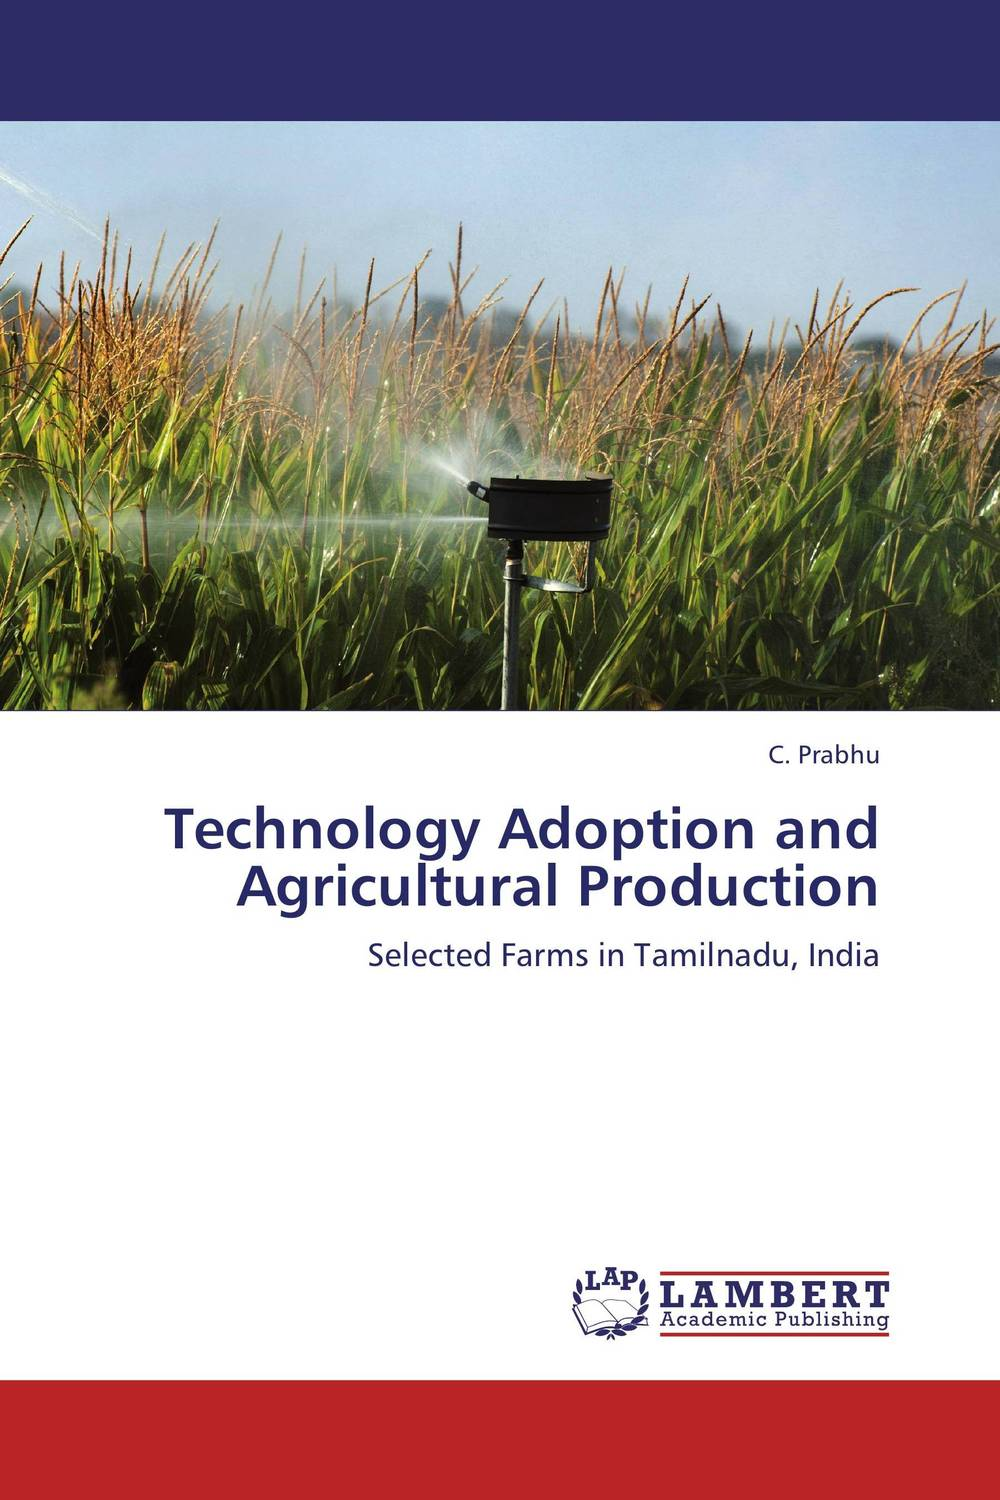 Technology Adoption and Agricultural Production cold storage accessibility and agricultural production by smallholders